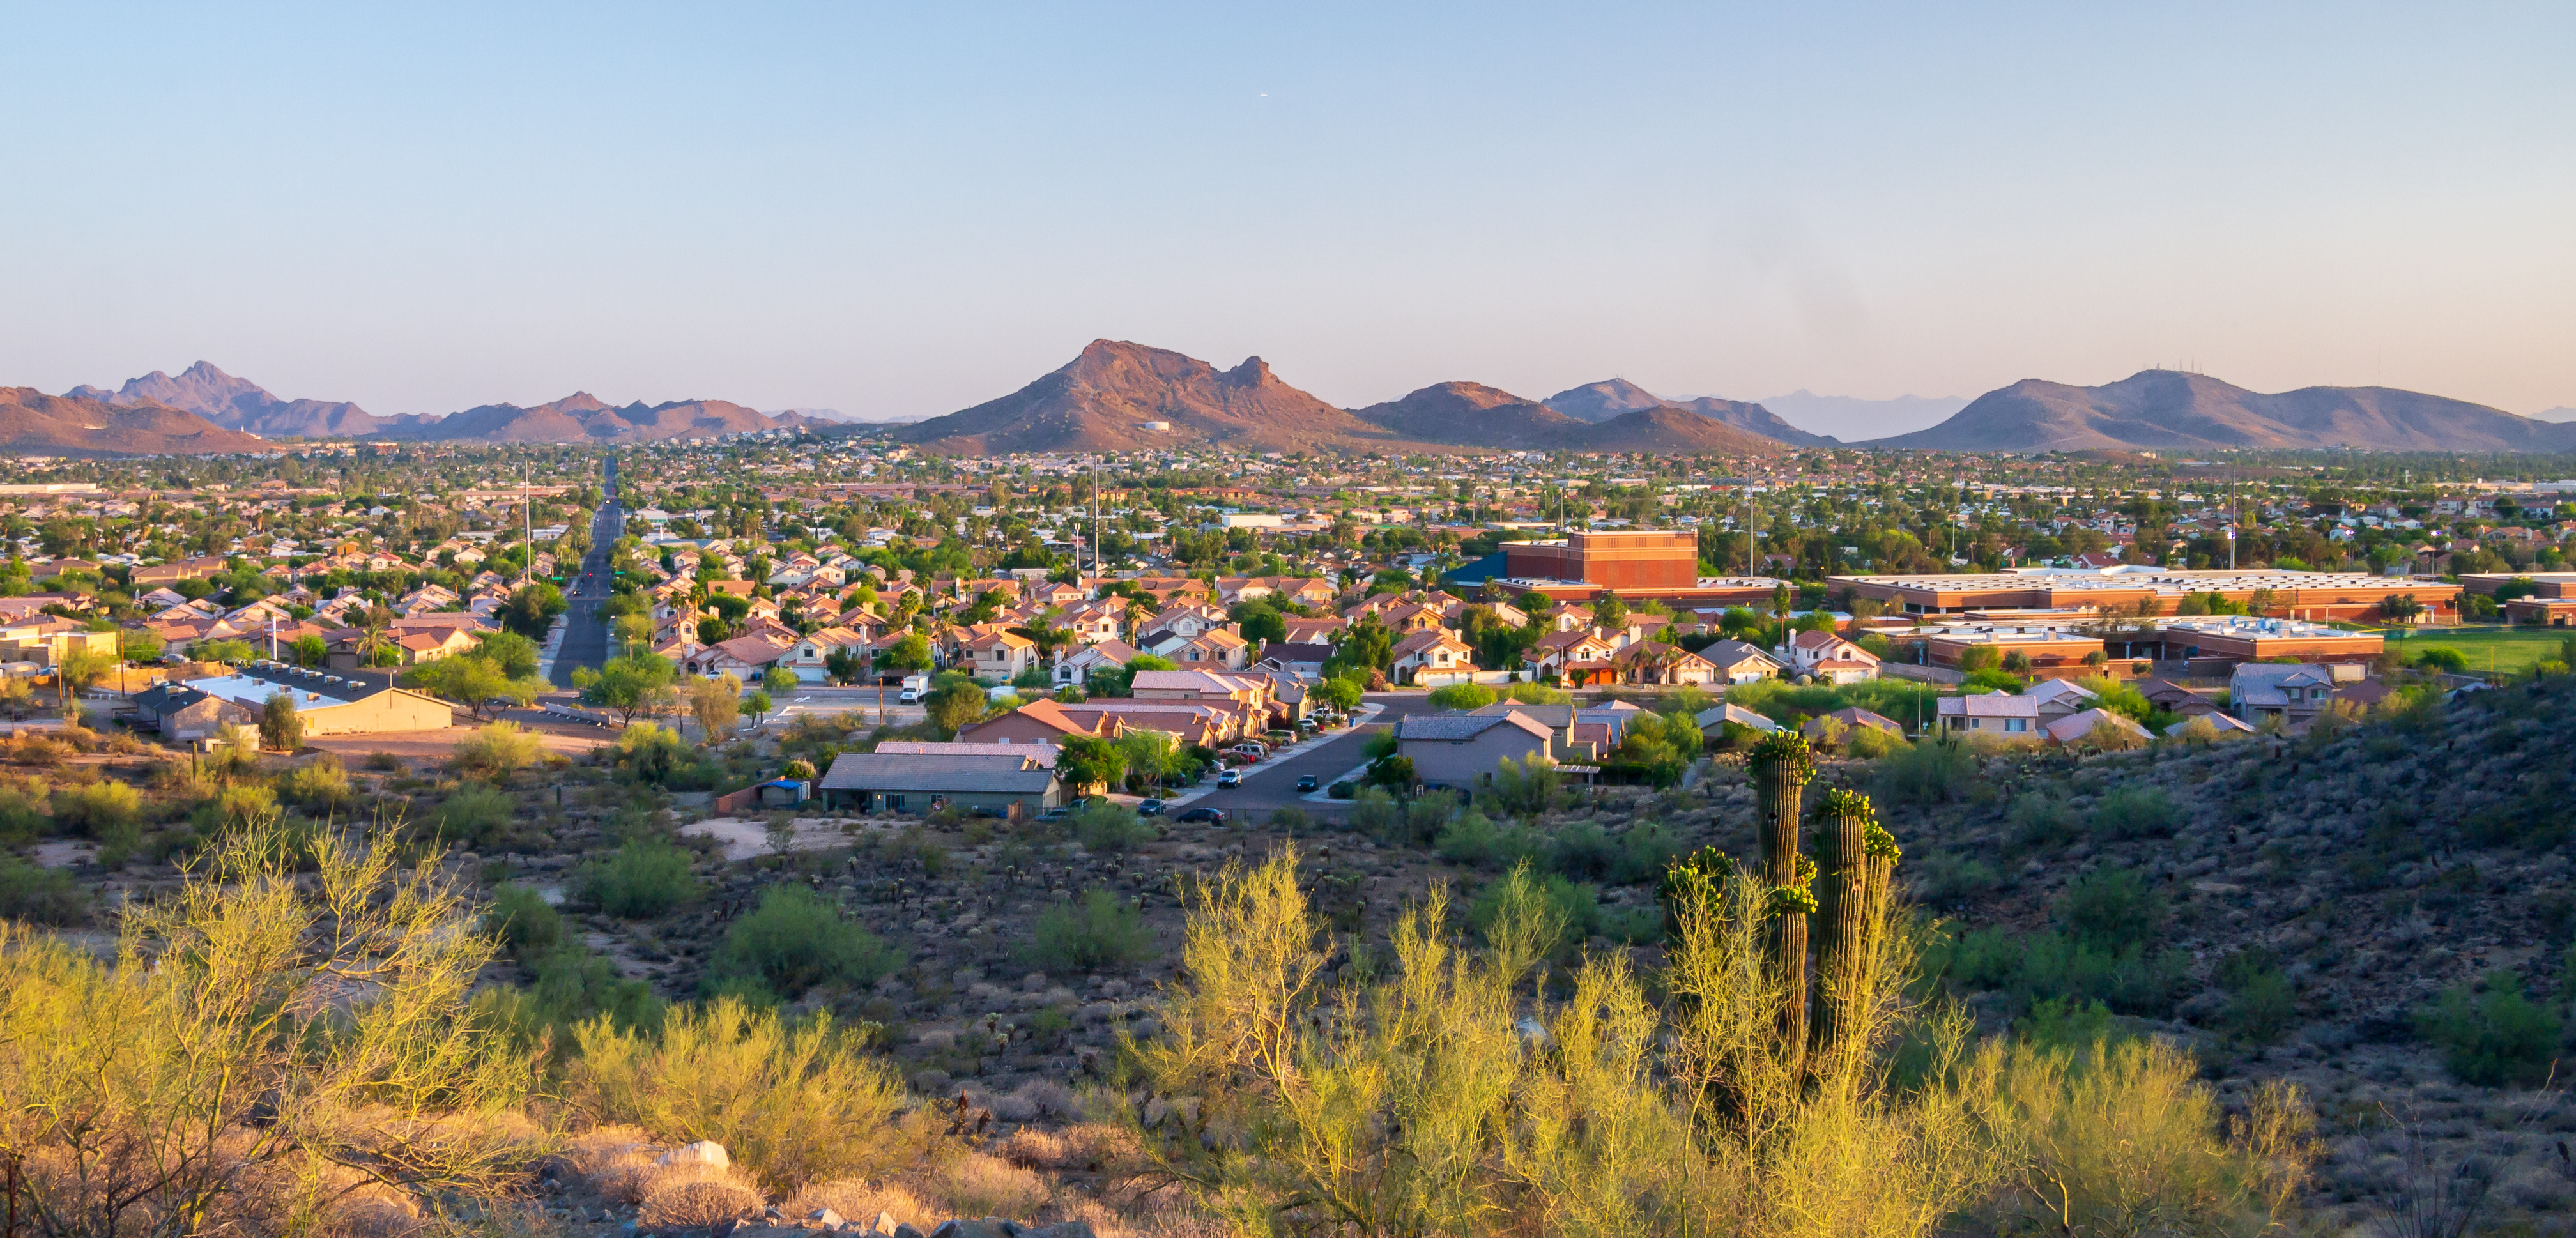 Who Is Moving To Arizona?